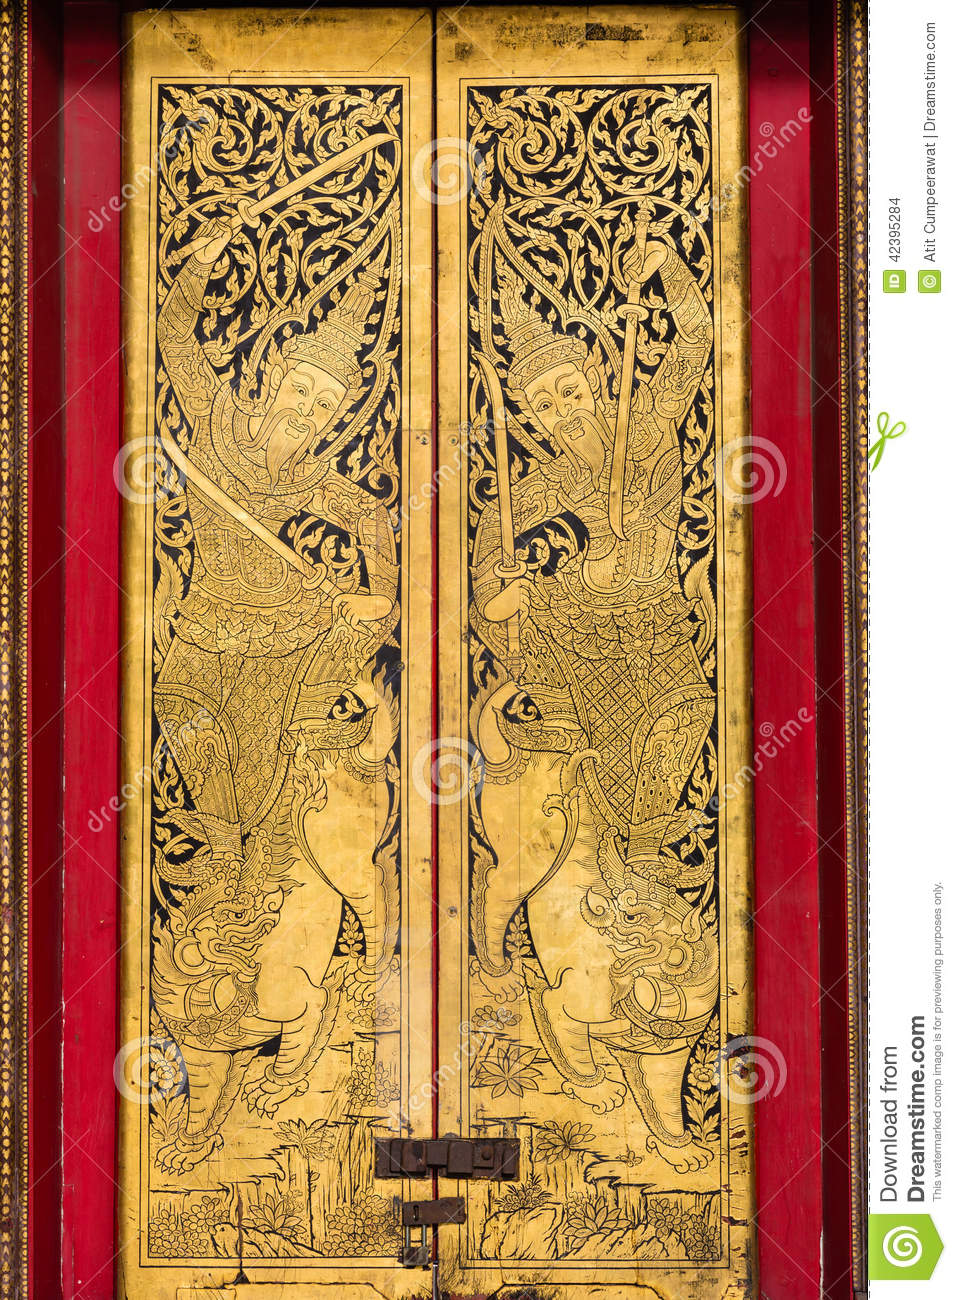 Door at wat Benchamabophit temple, bangkok in Thailand